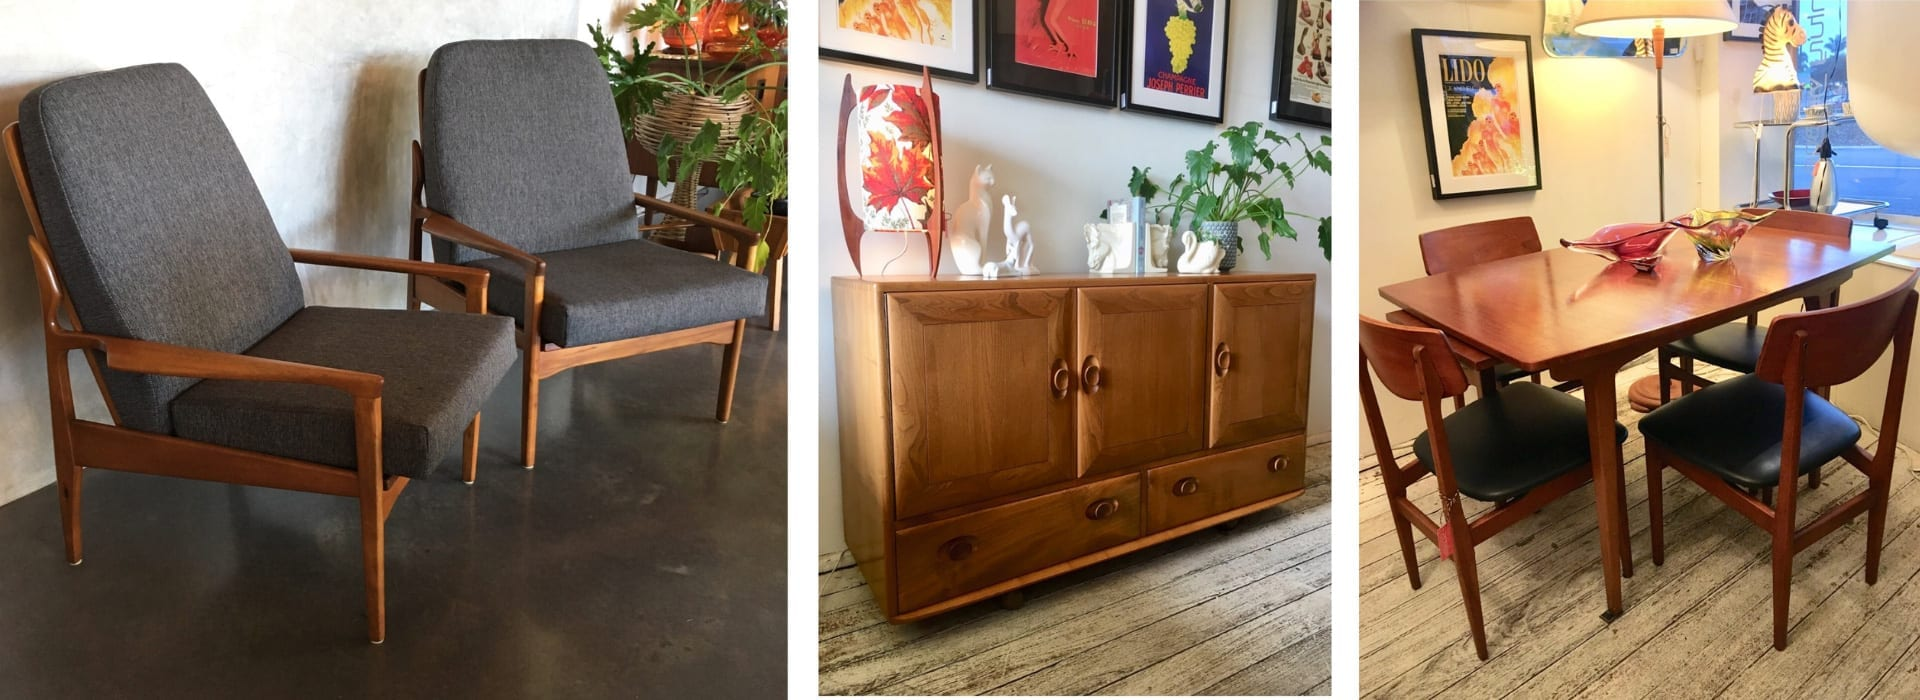 Image of: Mid Century Furniture Retro Furniture 20th Century Vintage Perth